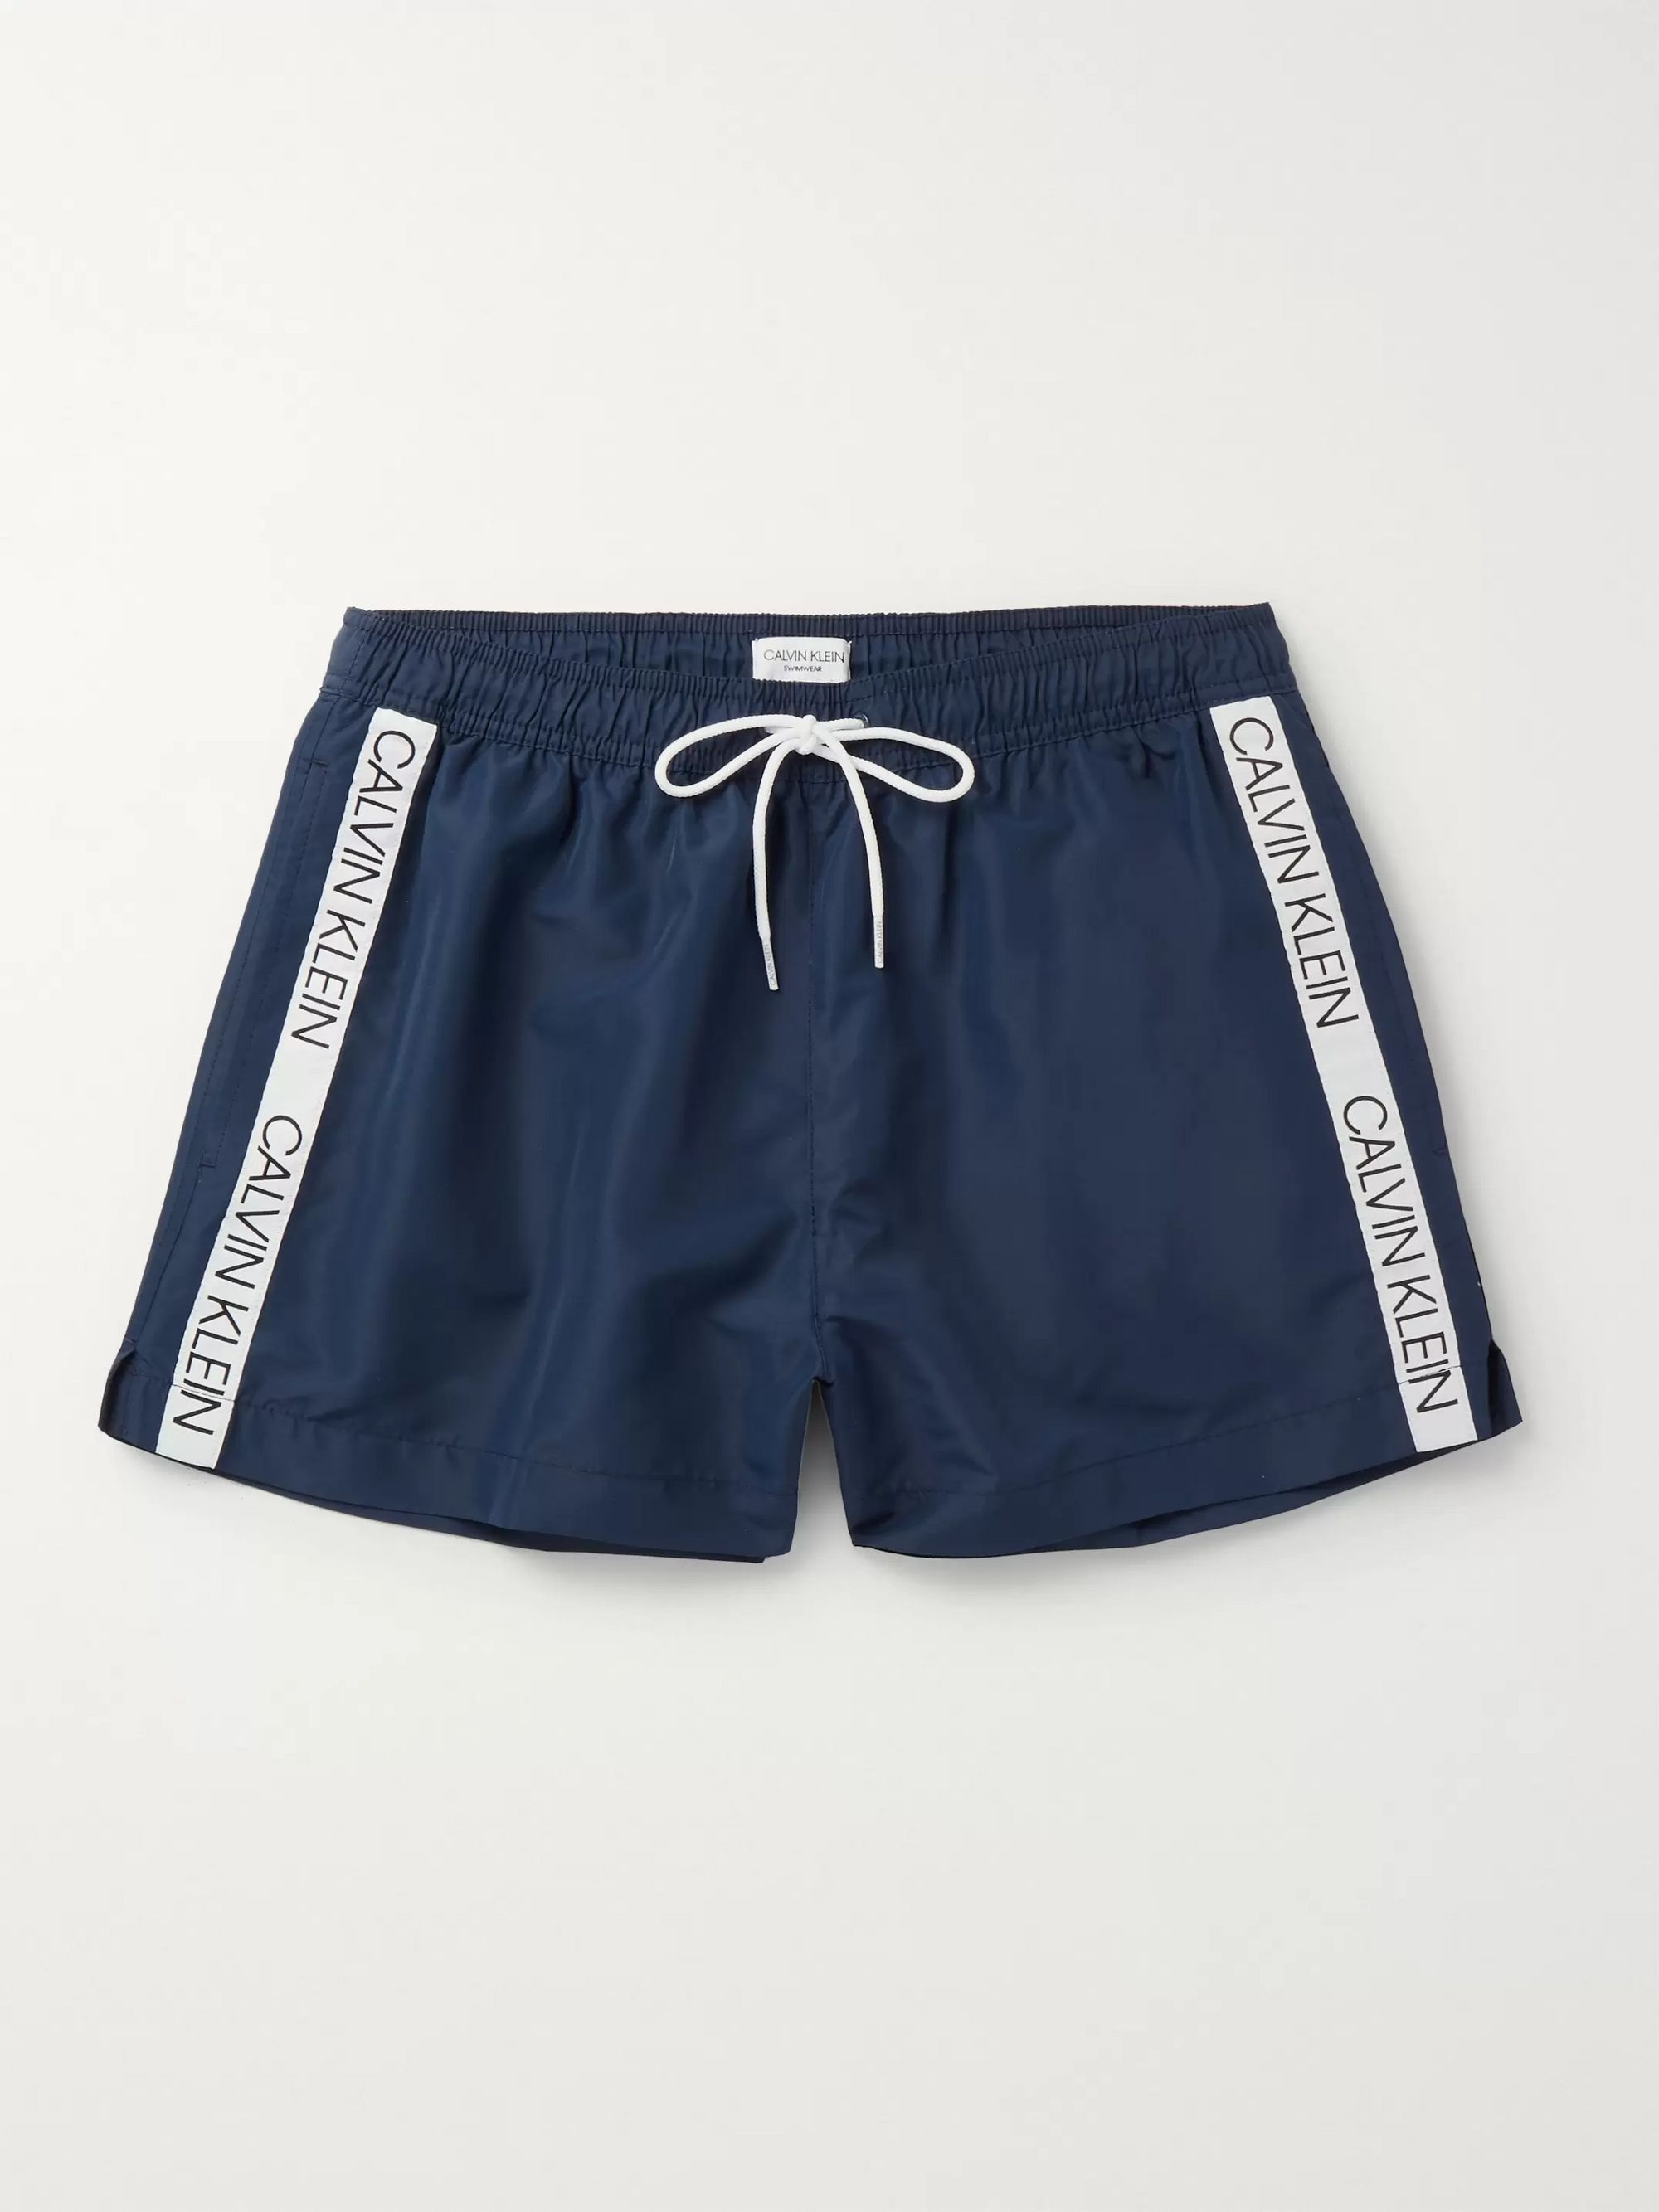 Calvin Klein Underwear Short-Length Logo Jacquard-Trimmed Swim Shorts